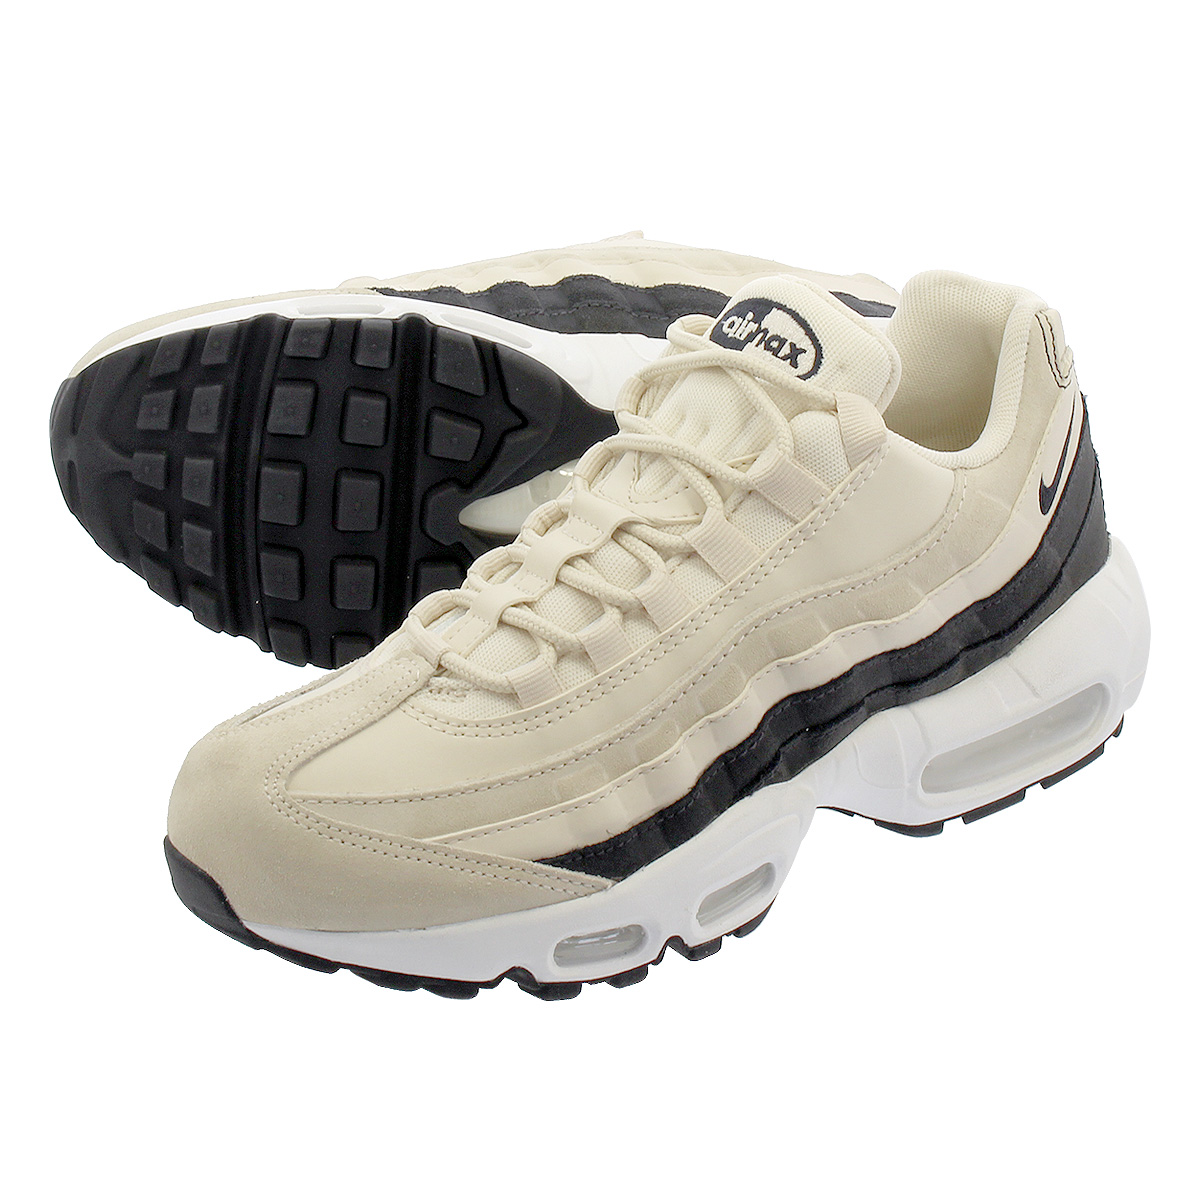 buy popular 8bc14 9913c NIKE WMNS AIR MAX 95 PRM Nike women Air Max 95 premium LIGHT CREAM/OIL  GREY/SUMMIT WHITE 807,443-203